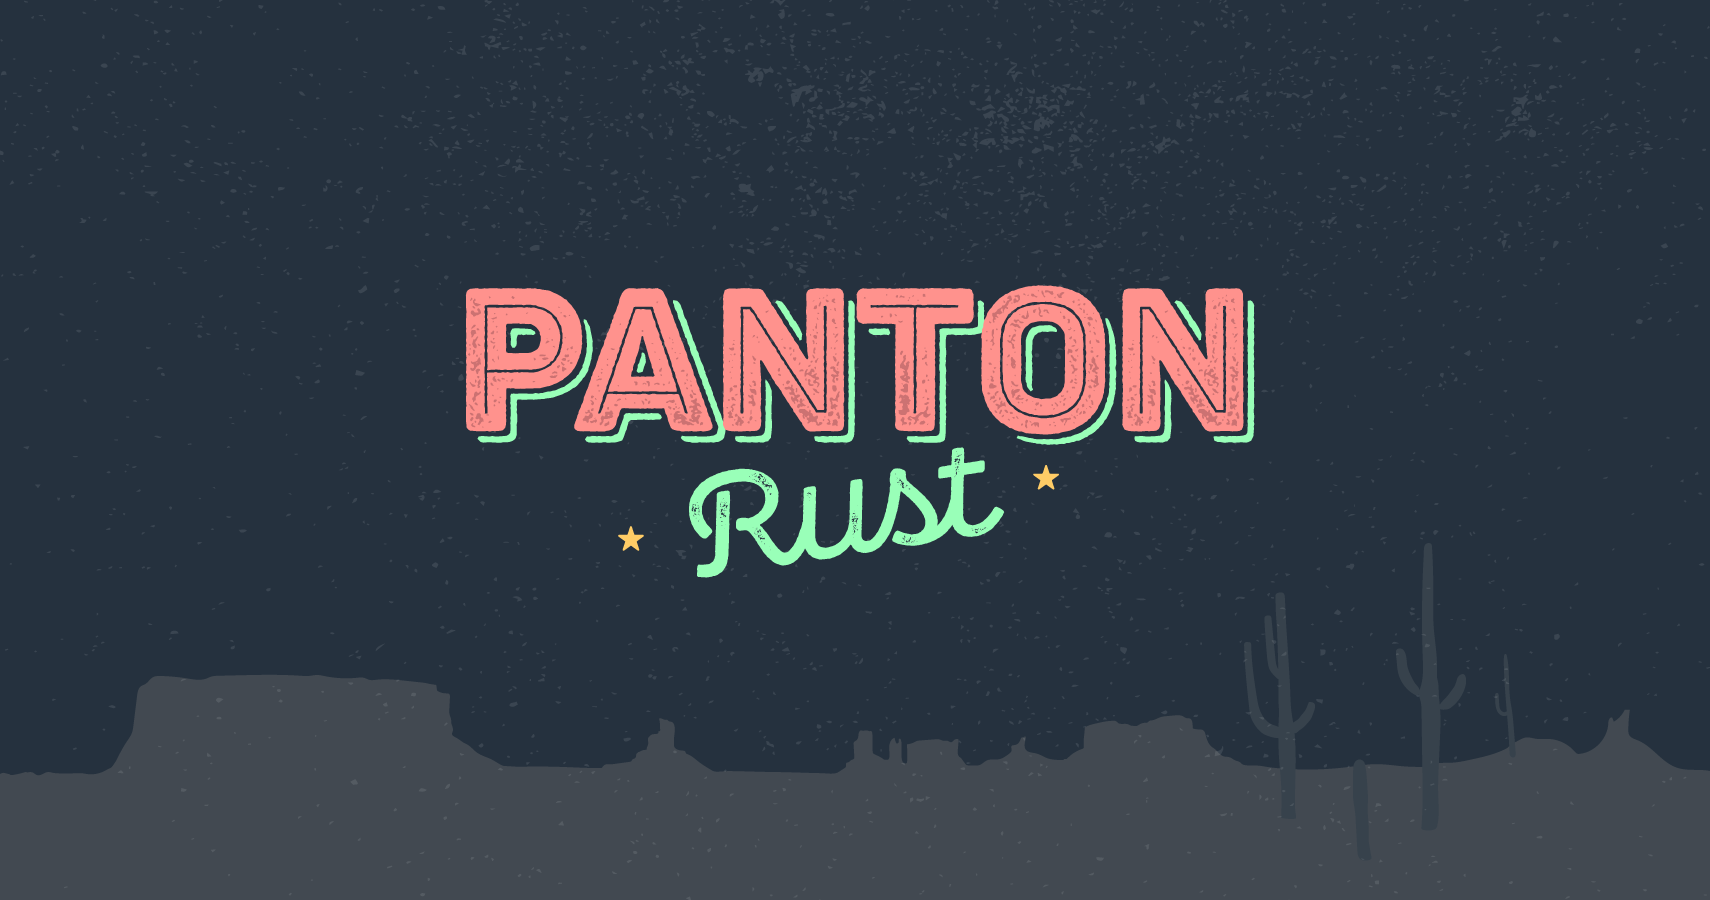 The Making of Panton Rust - Fontfabric™ Blog